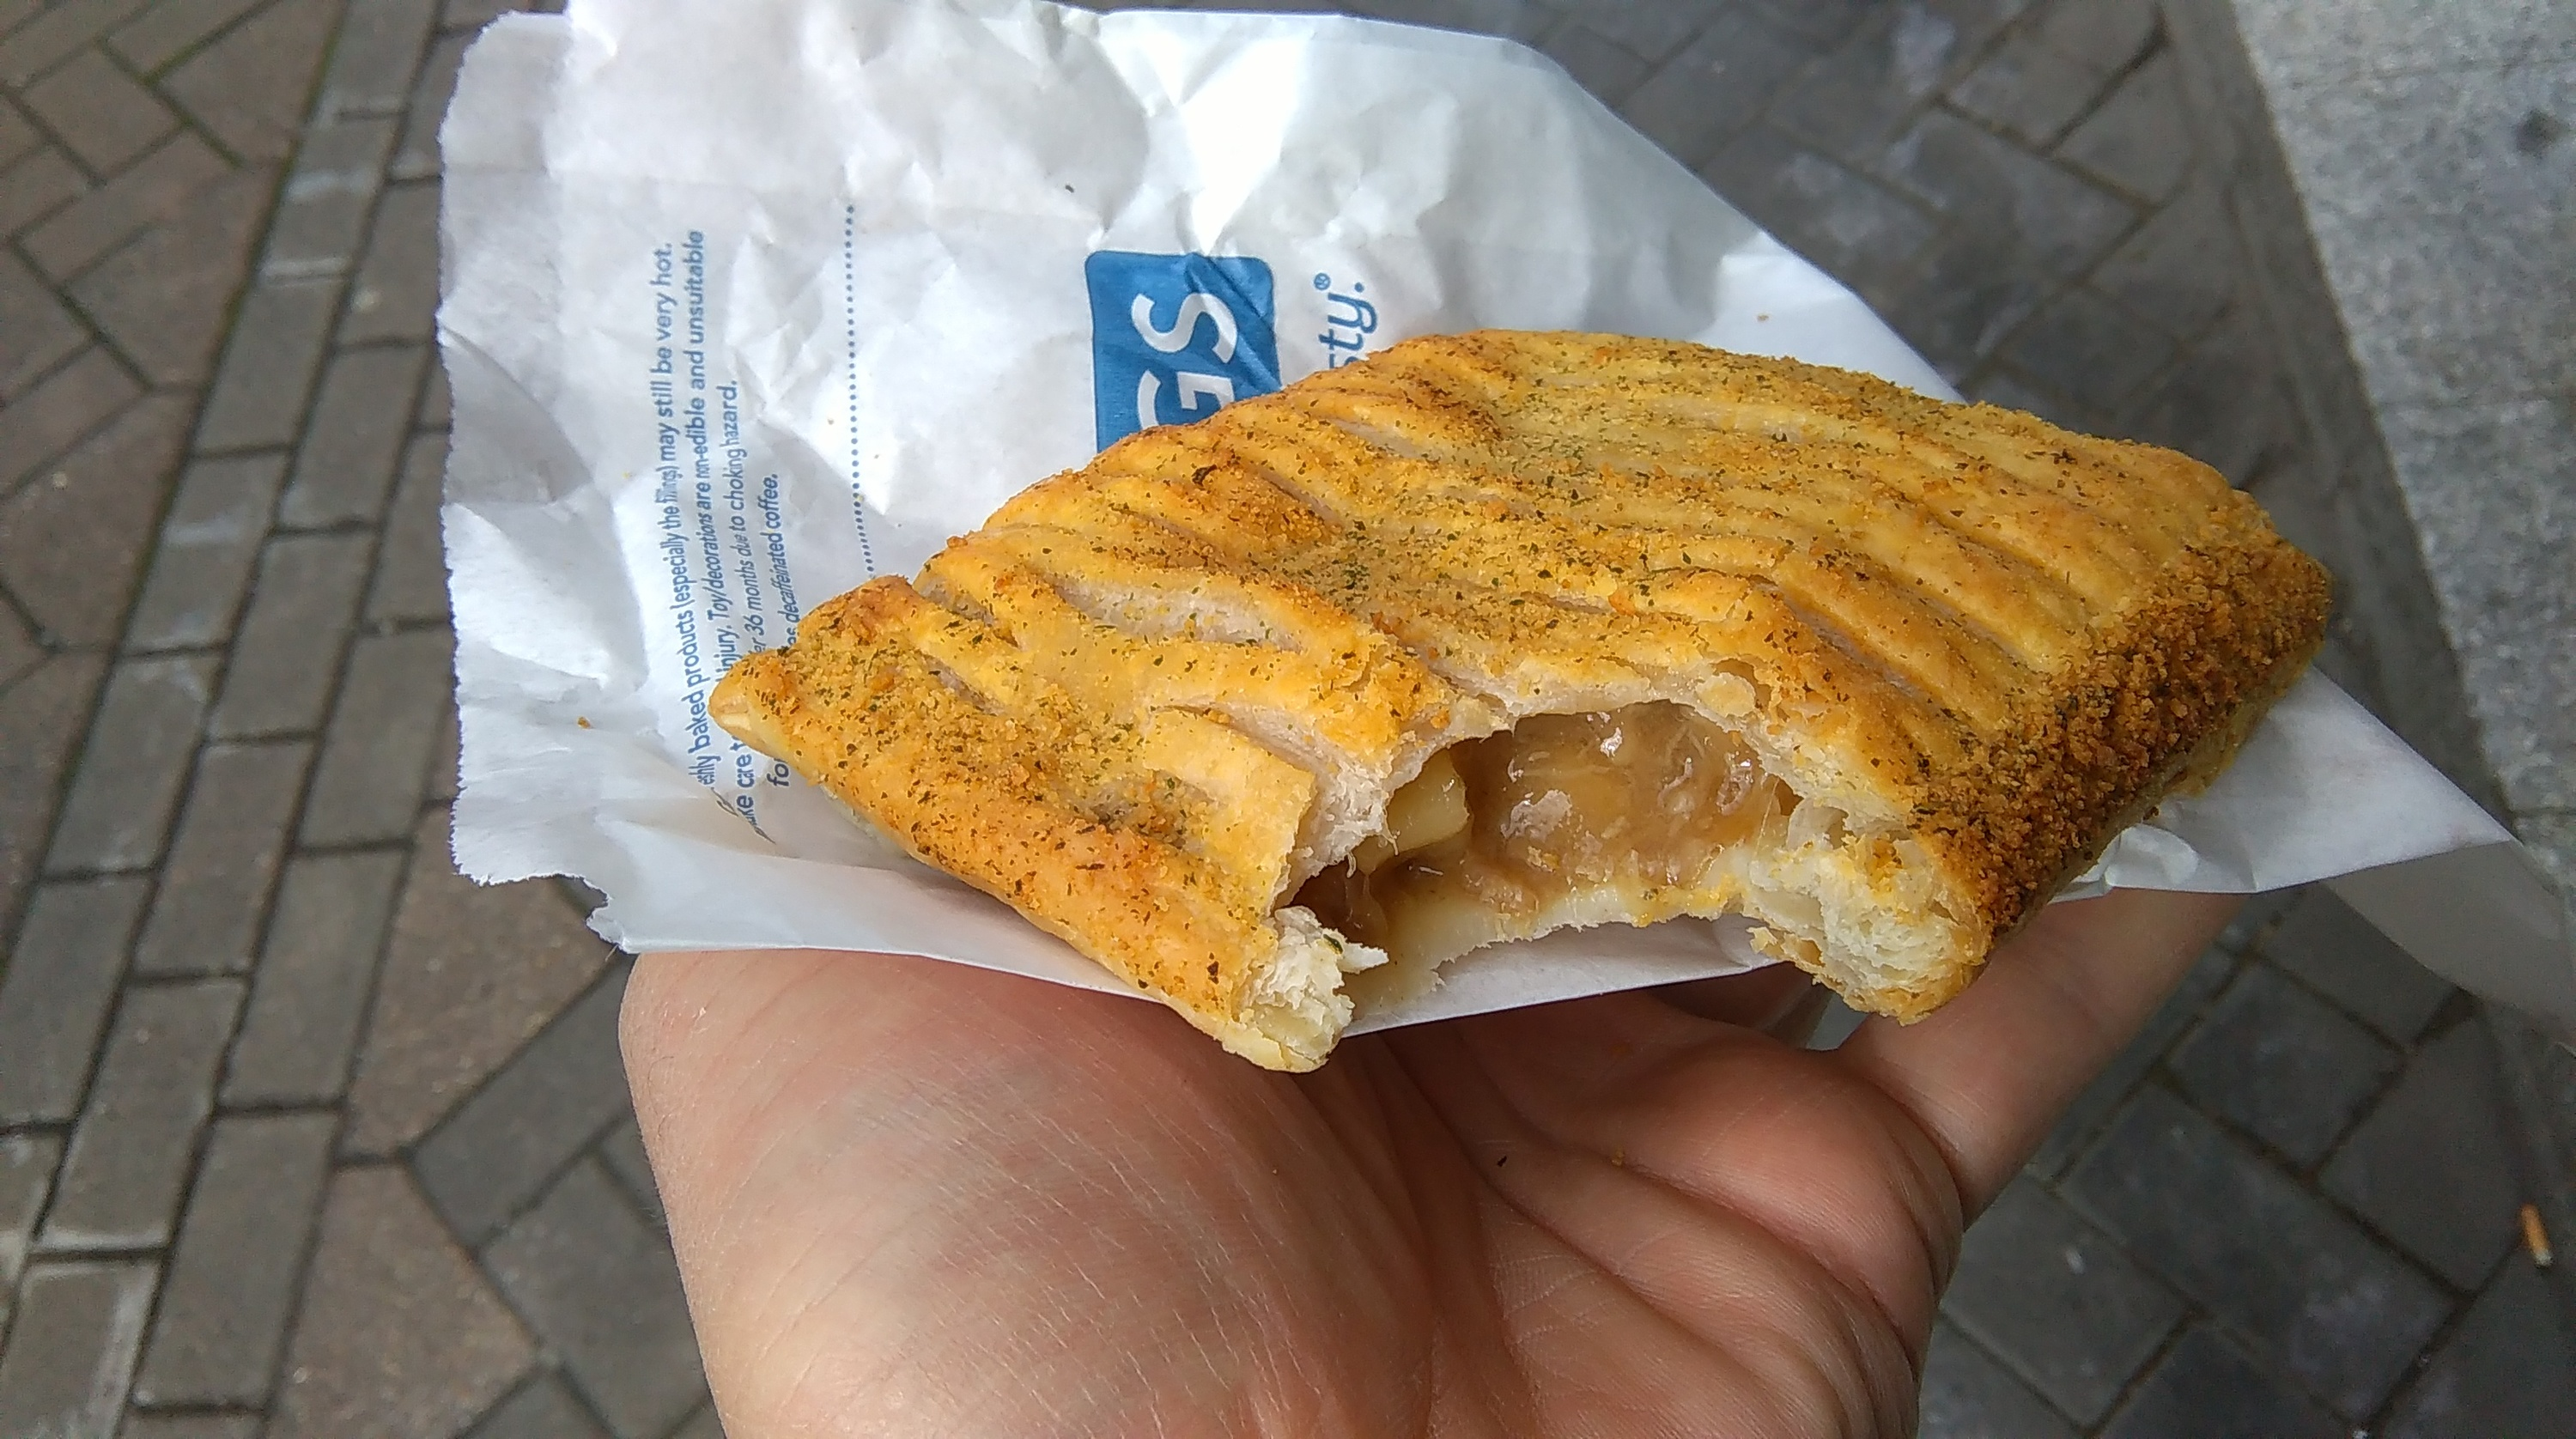 greggs pork stuffing and apple